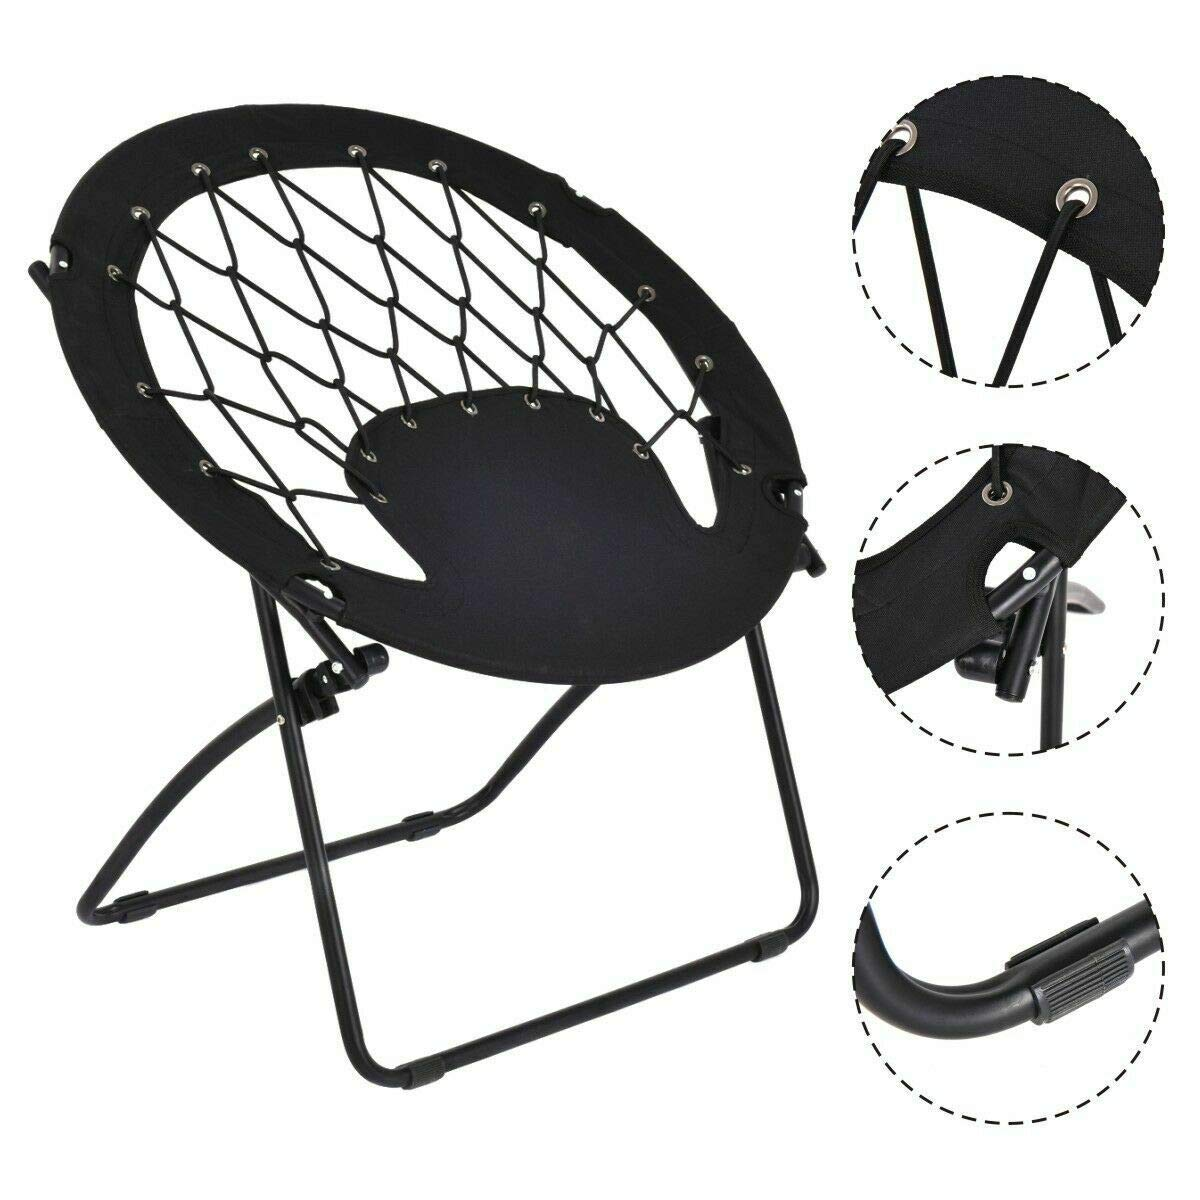 Wondrous Amazon Com Winmart New Folding Round Bungee Chair Steel Download Free Architecture Designs Rallybritishbridgeorg